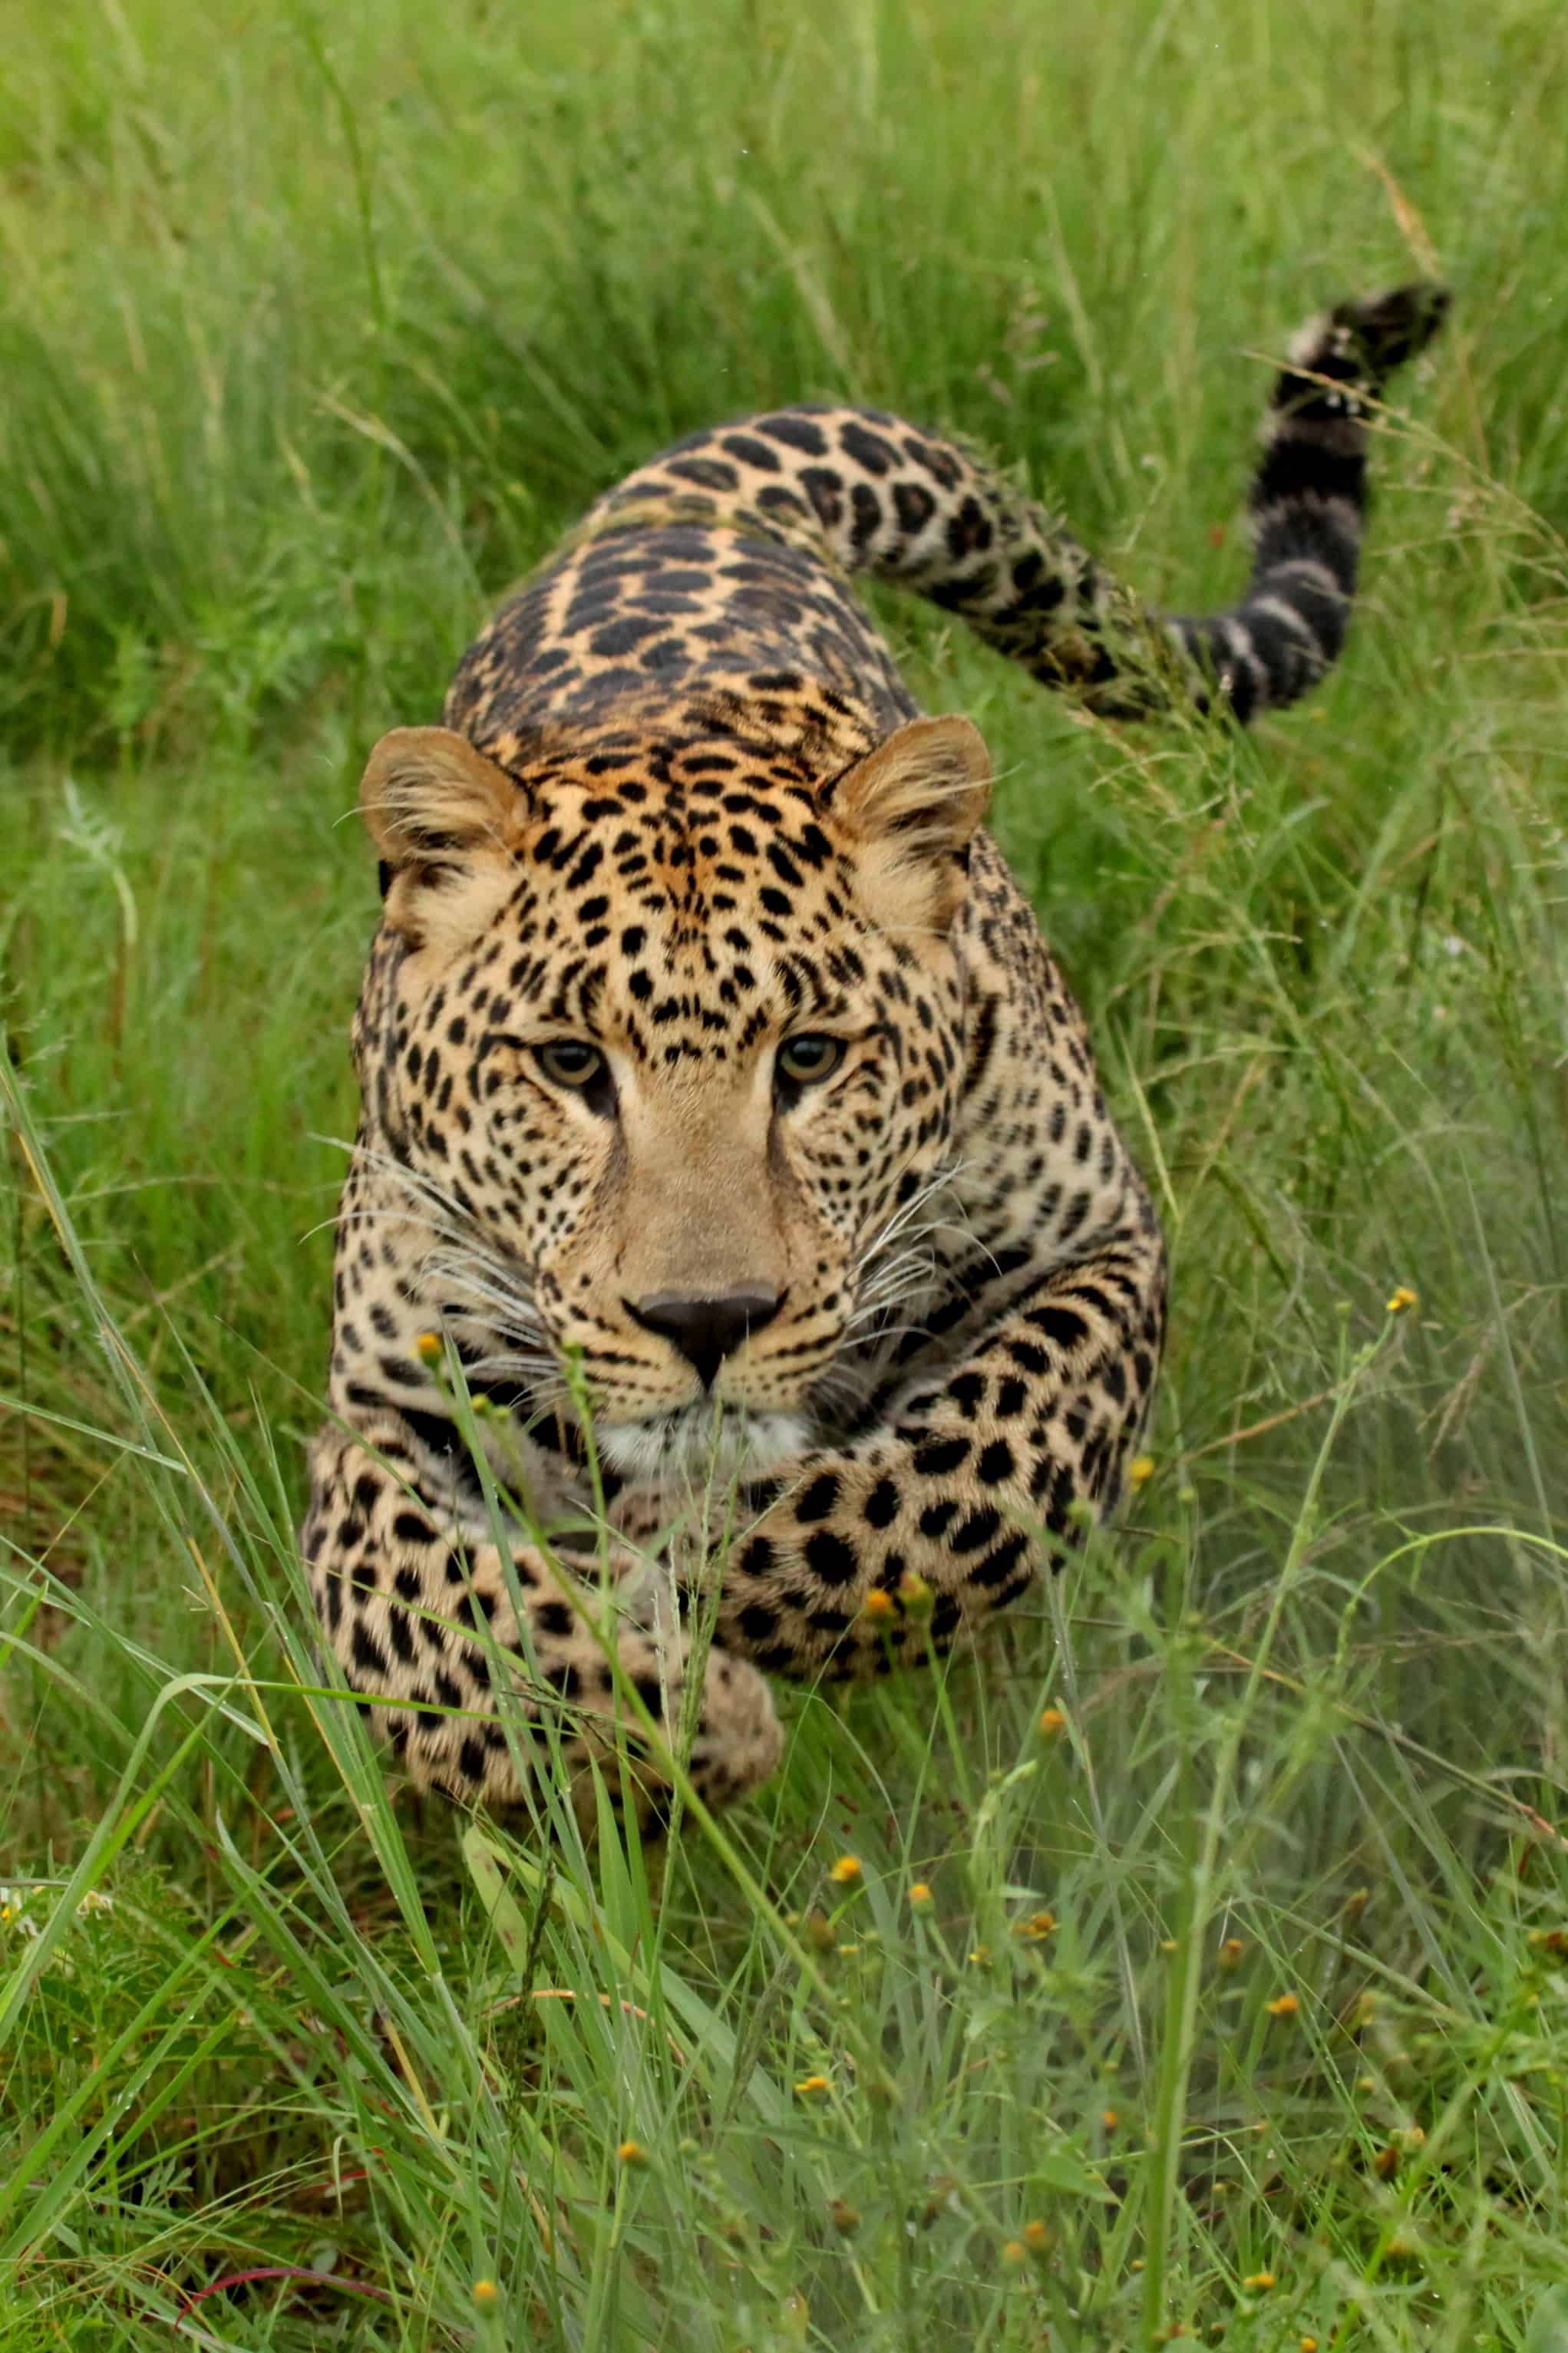 Who are the predators of Leopard?